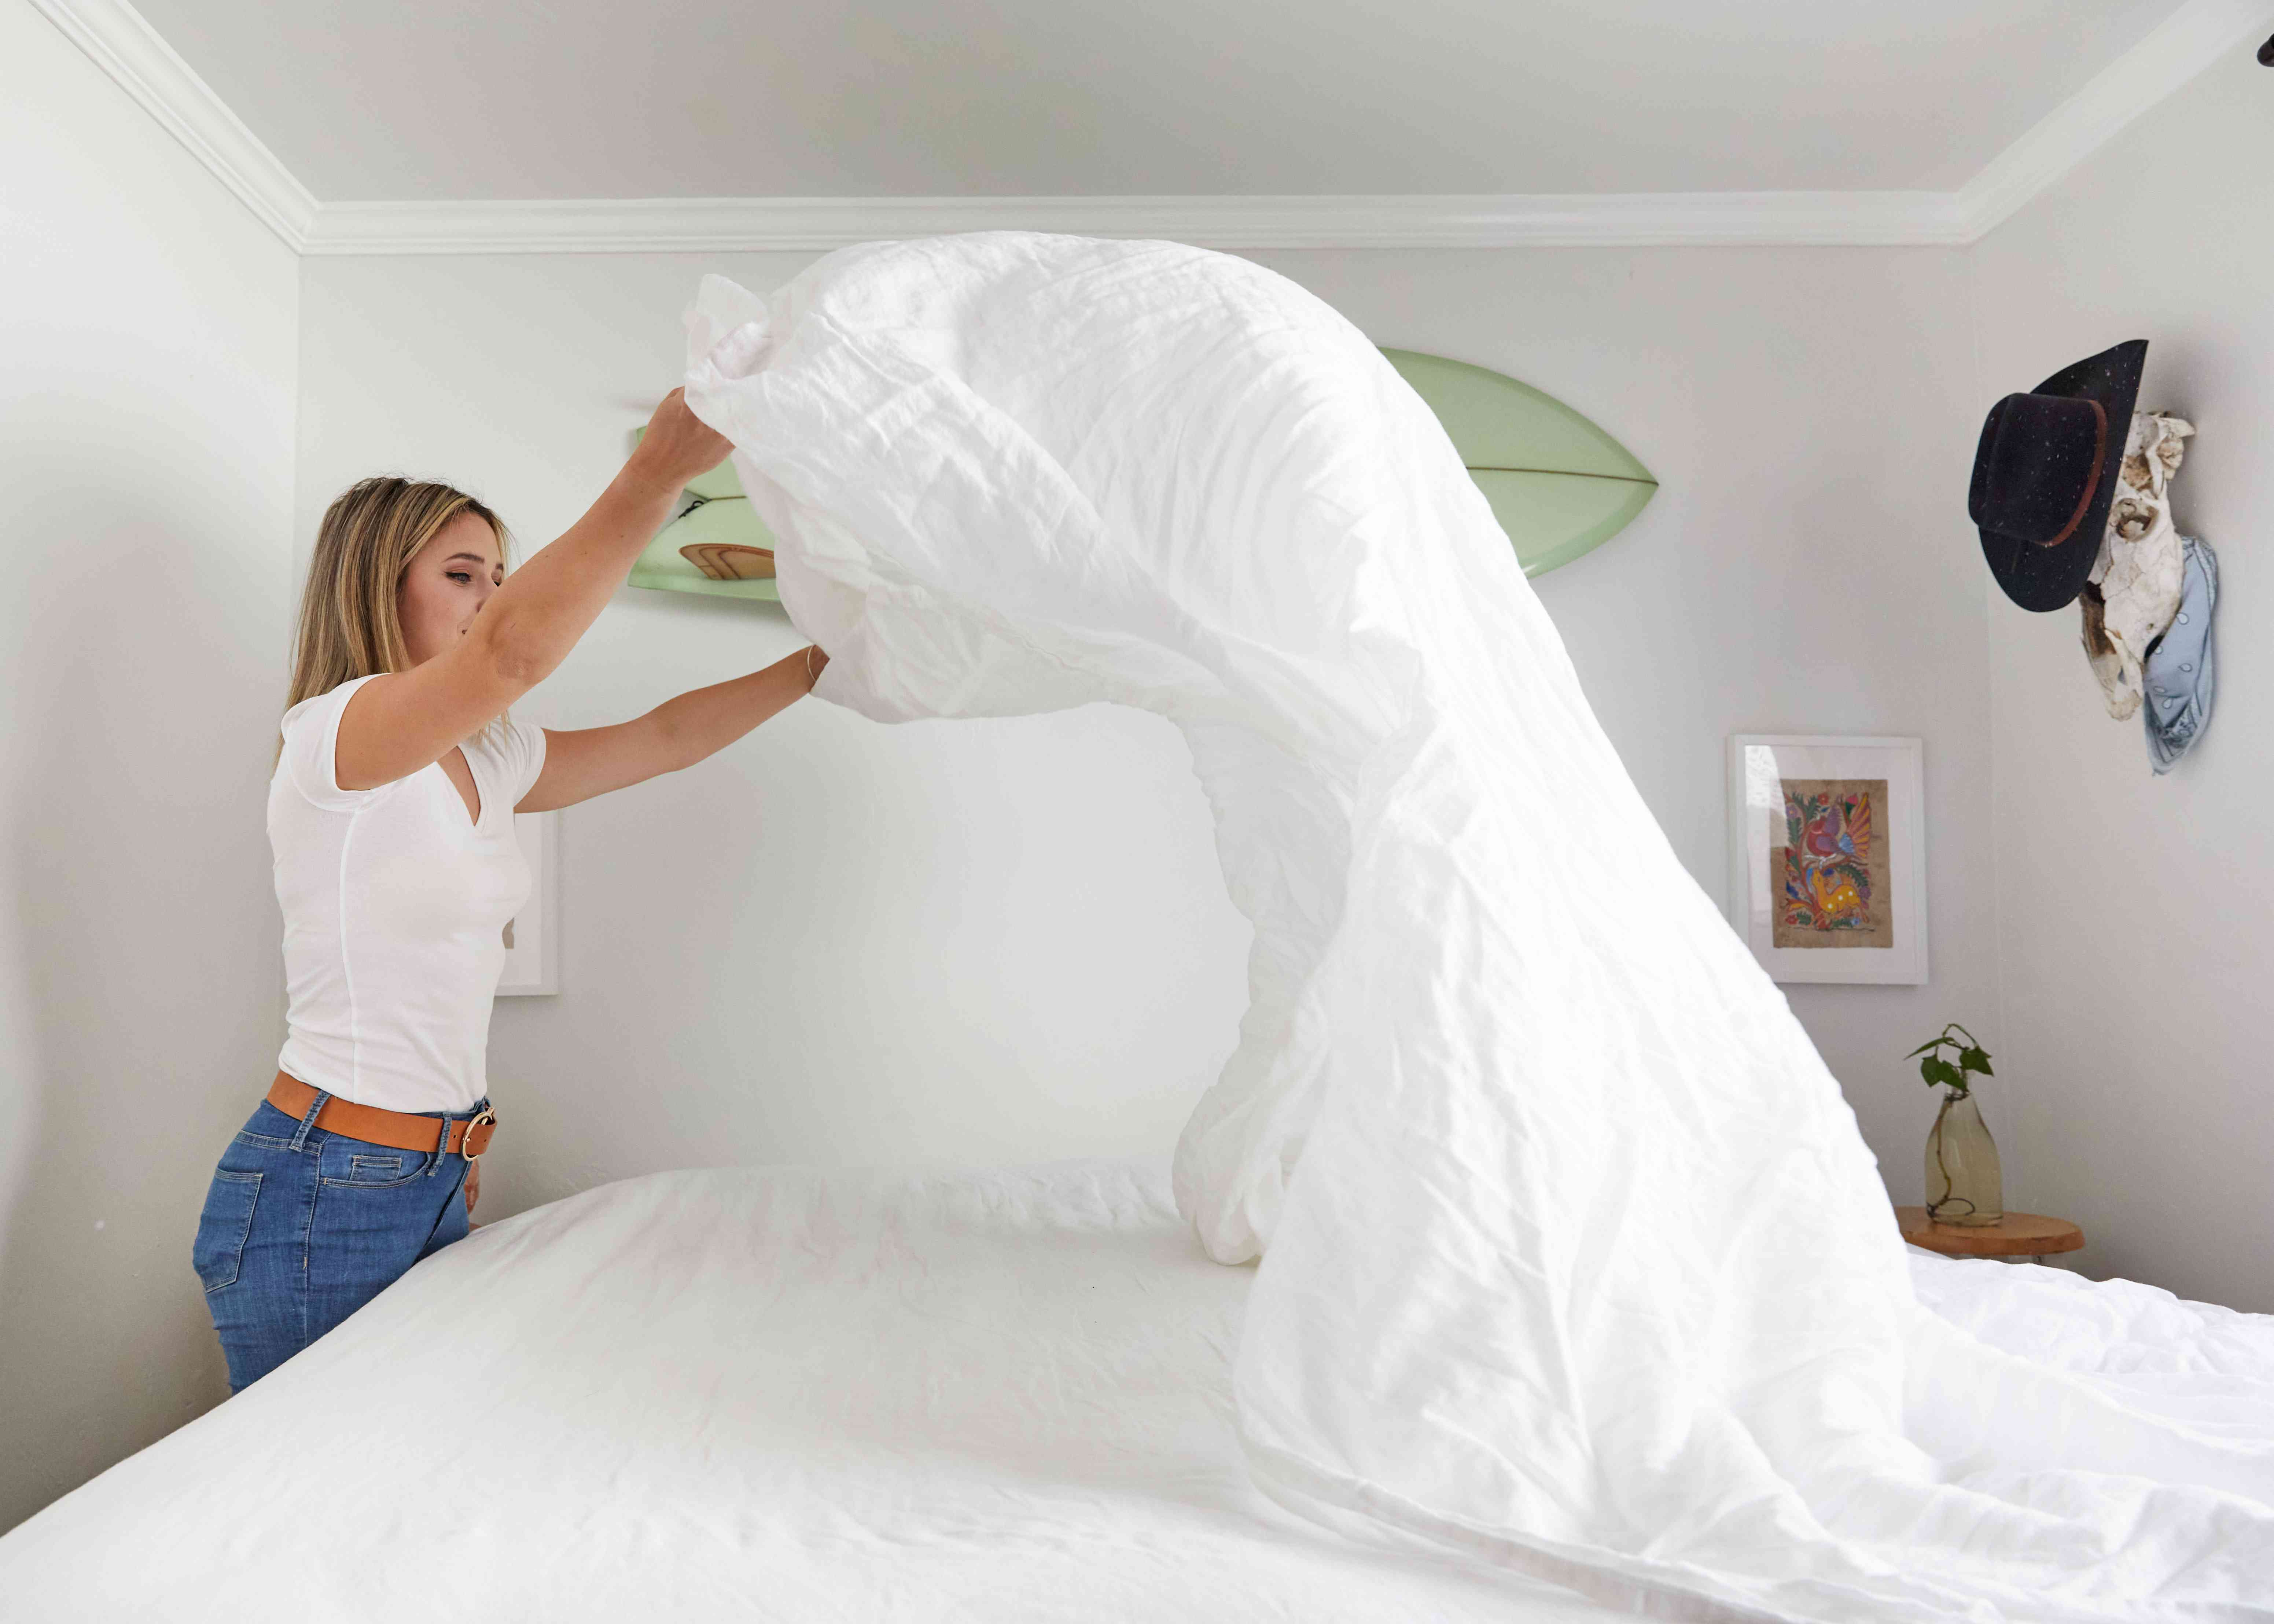 woman putting sheets on a bed